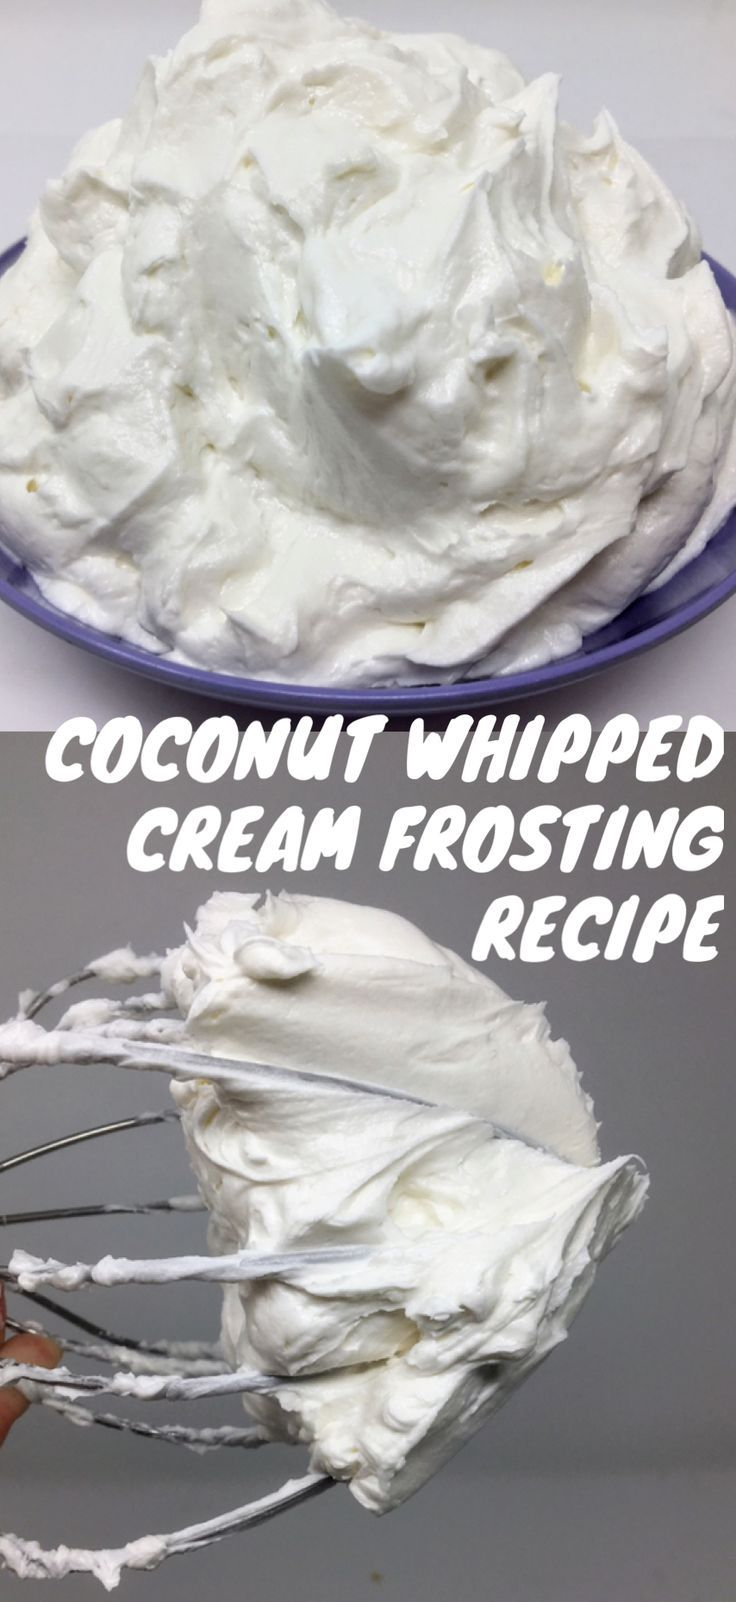 Vegan coconut whipped cream frosting recipe. Simple easy ingredients for baking desserts for holiday occasions. Cupcakes, decorating, and piping. Mocha latte buttercream frosting recipe #cookiesandcreamfrosting